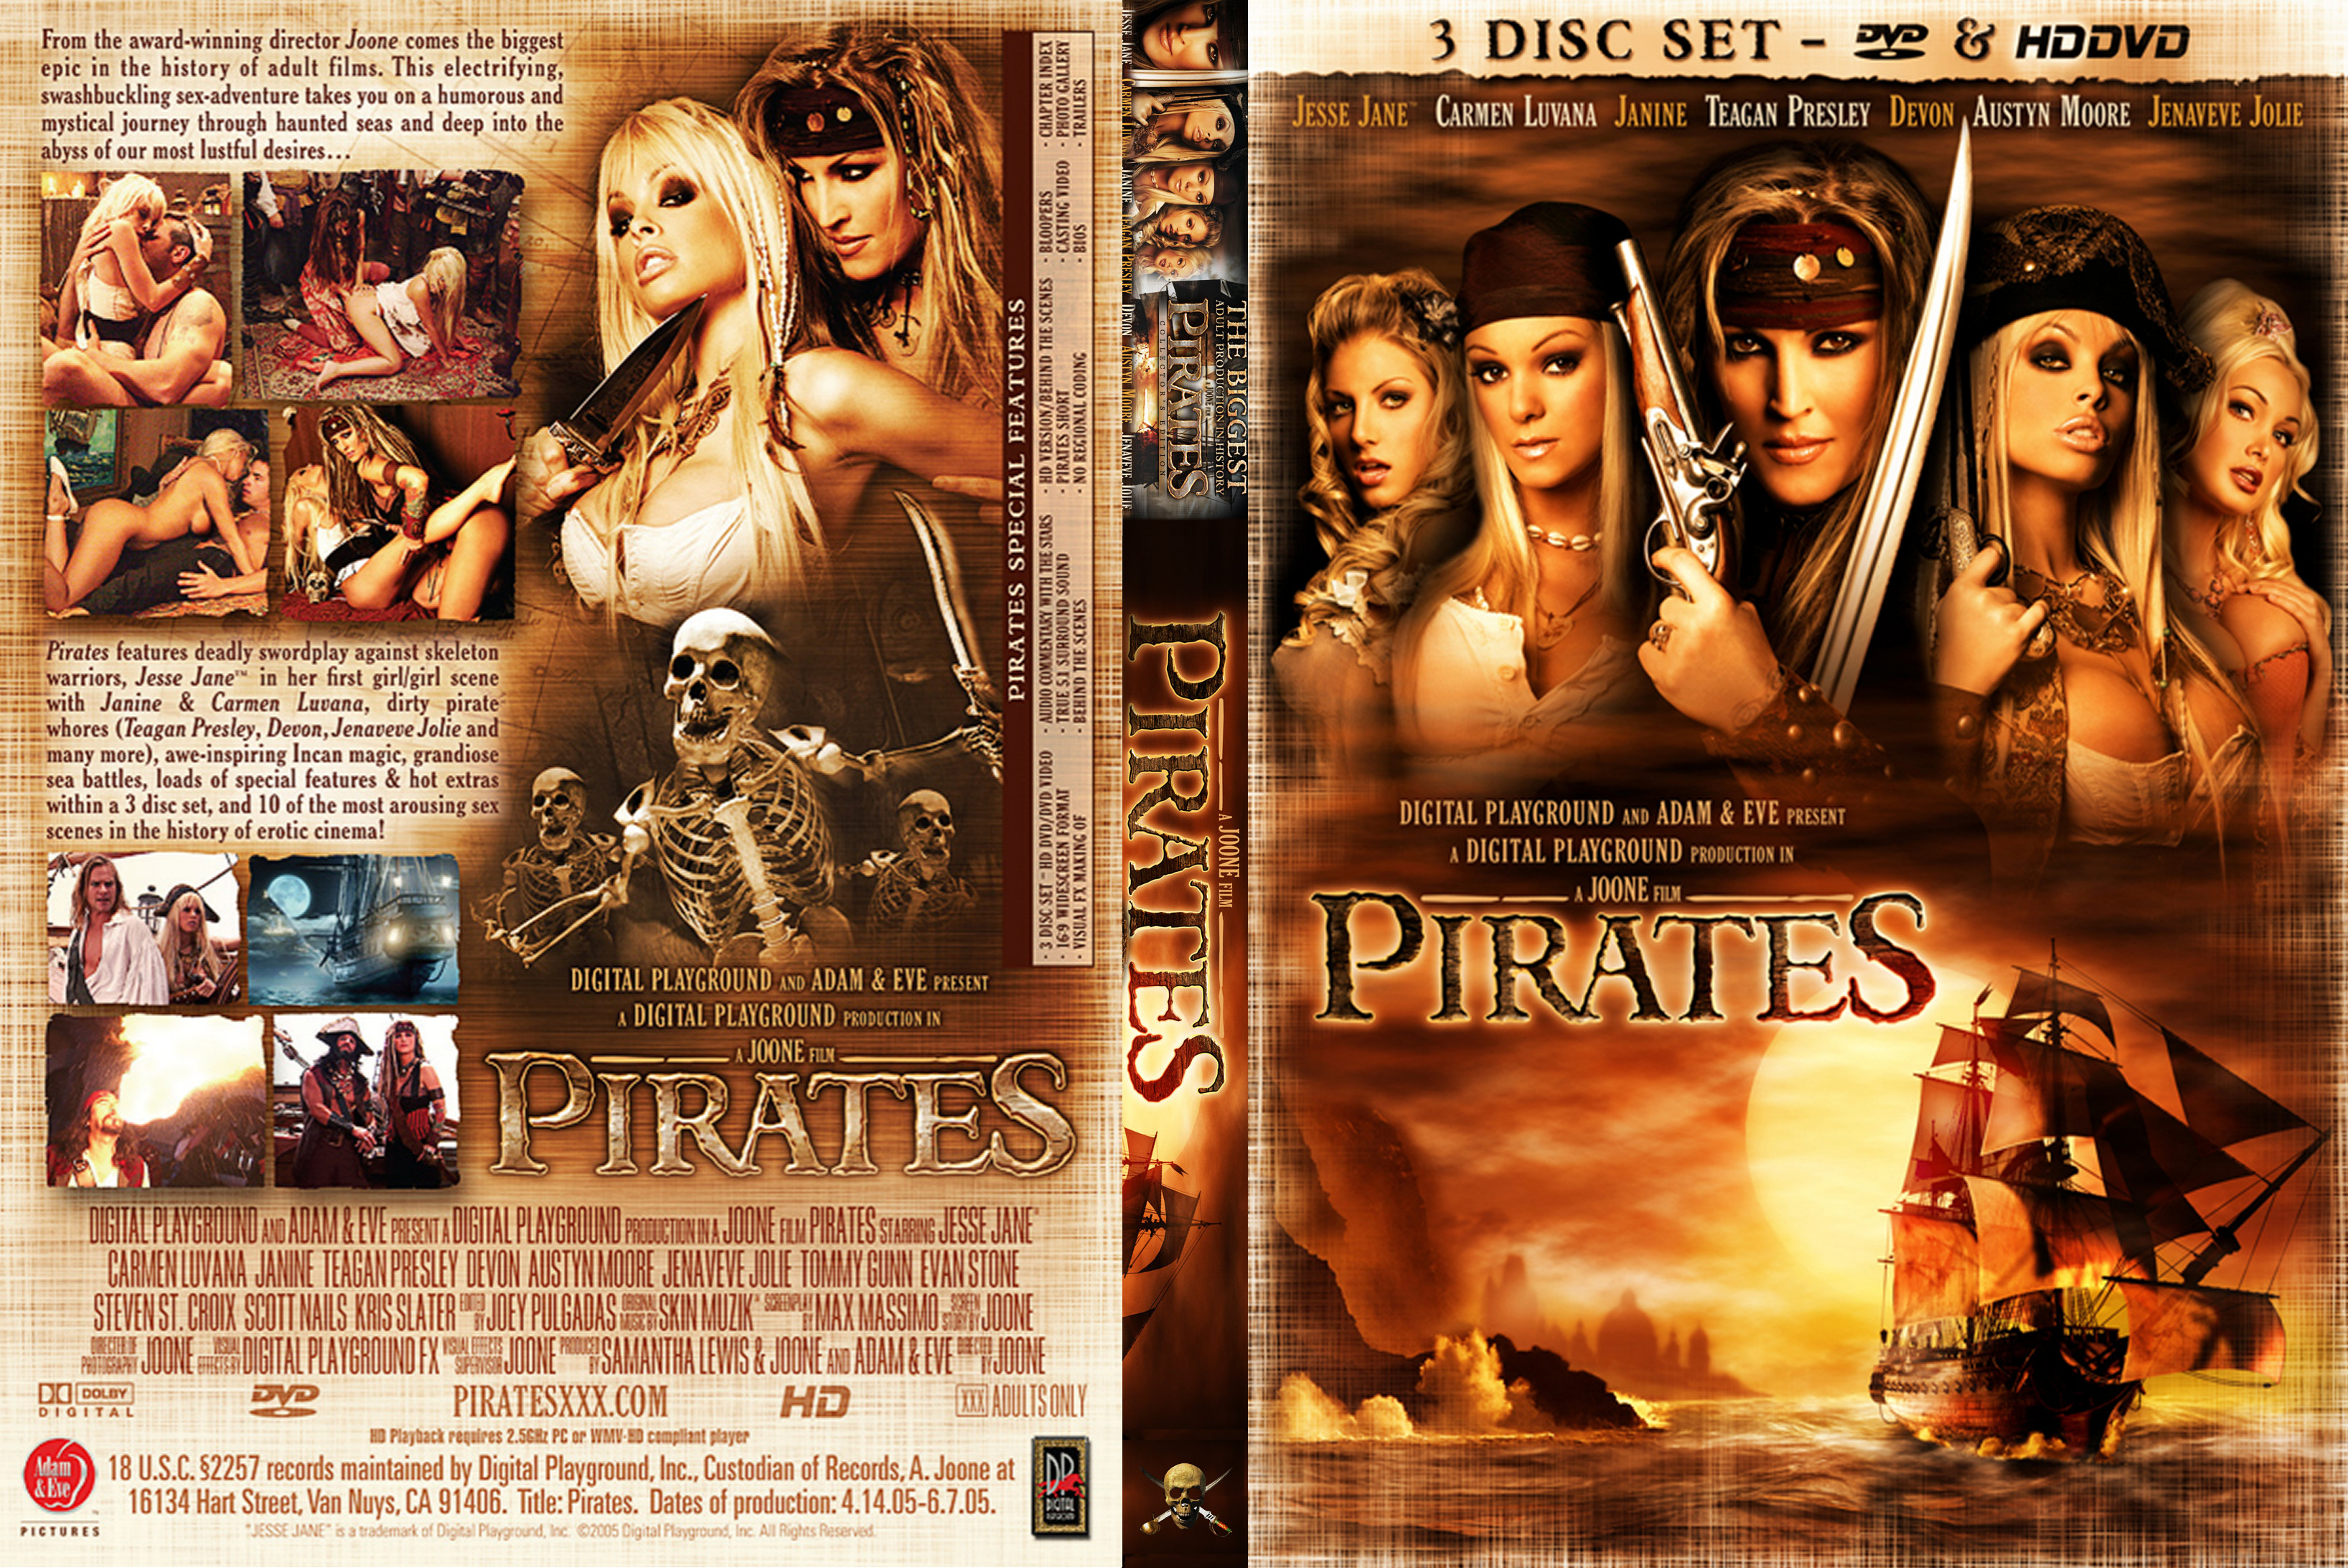 Pirates of caribbean porno porn scenes